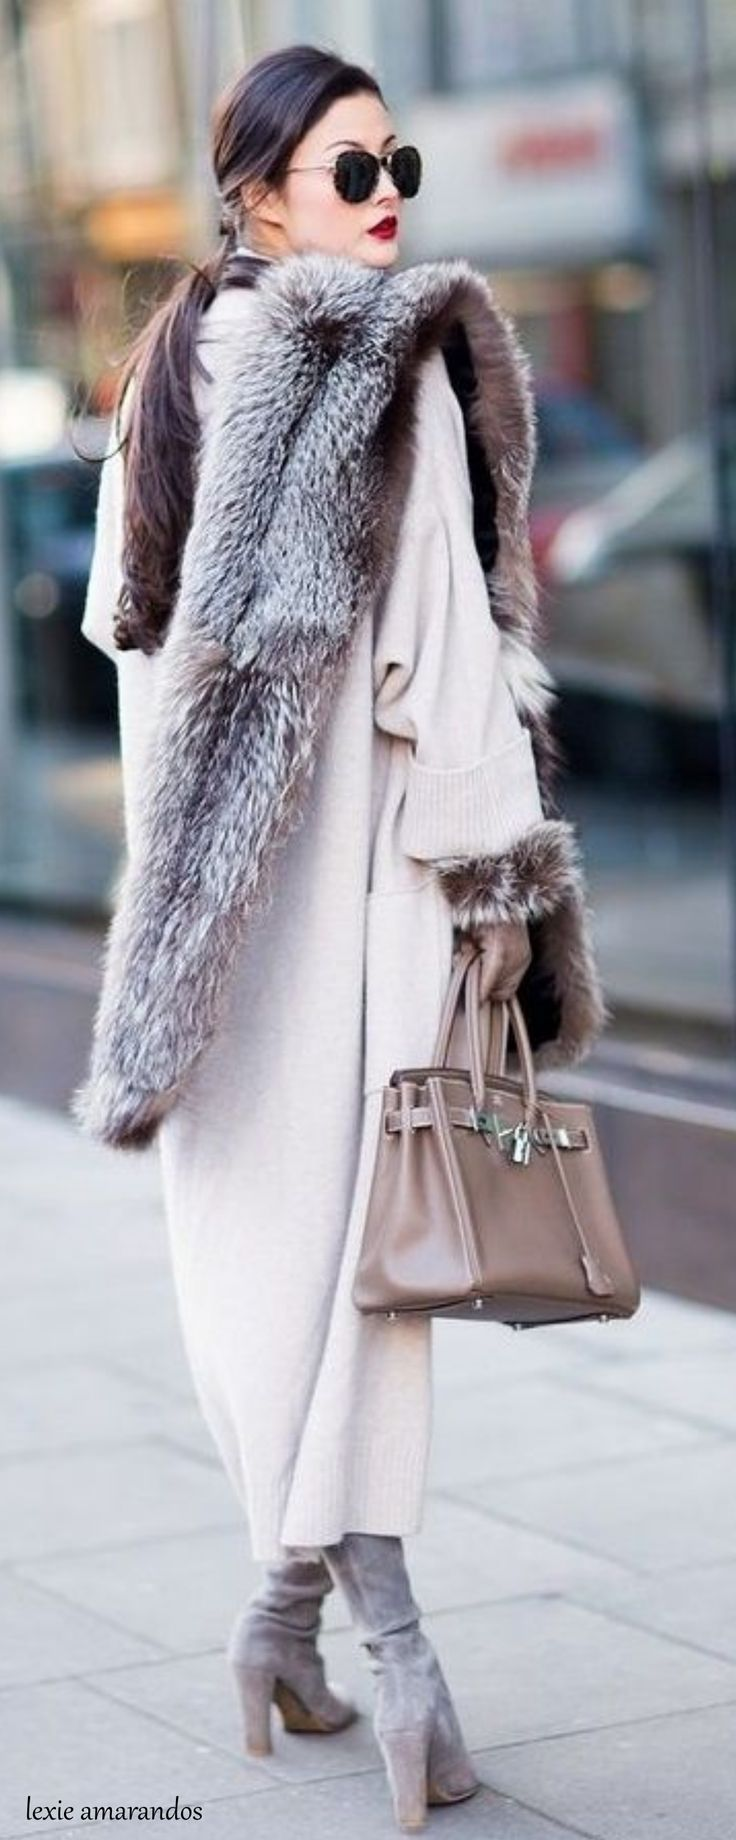 That coat! The fur!! Those boots!!! Love it all. And Hermes ~ Birkin Brown Leather Bag • тнє LOOK BOOK • ✿ιиѕριяαтισи❀ • Babz™ ✿ #abbigliamento